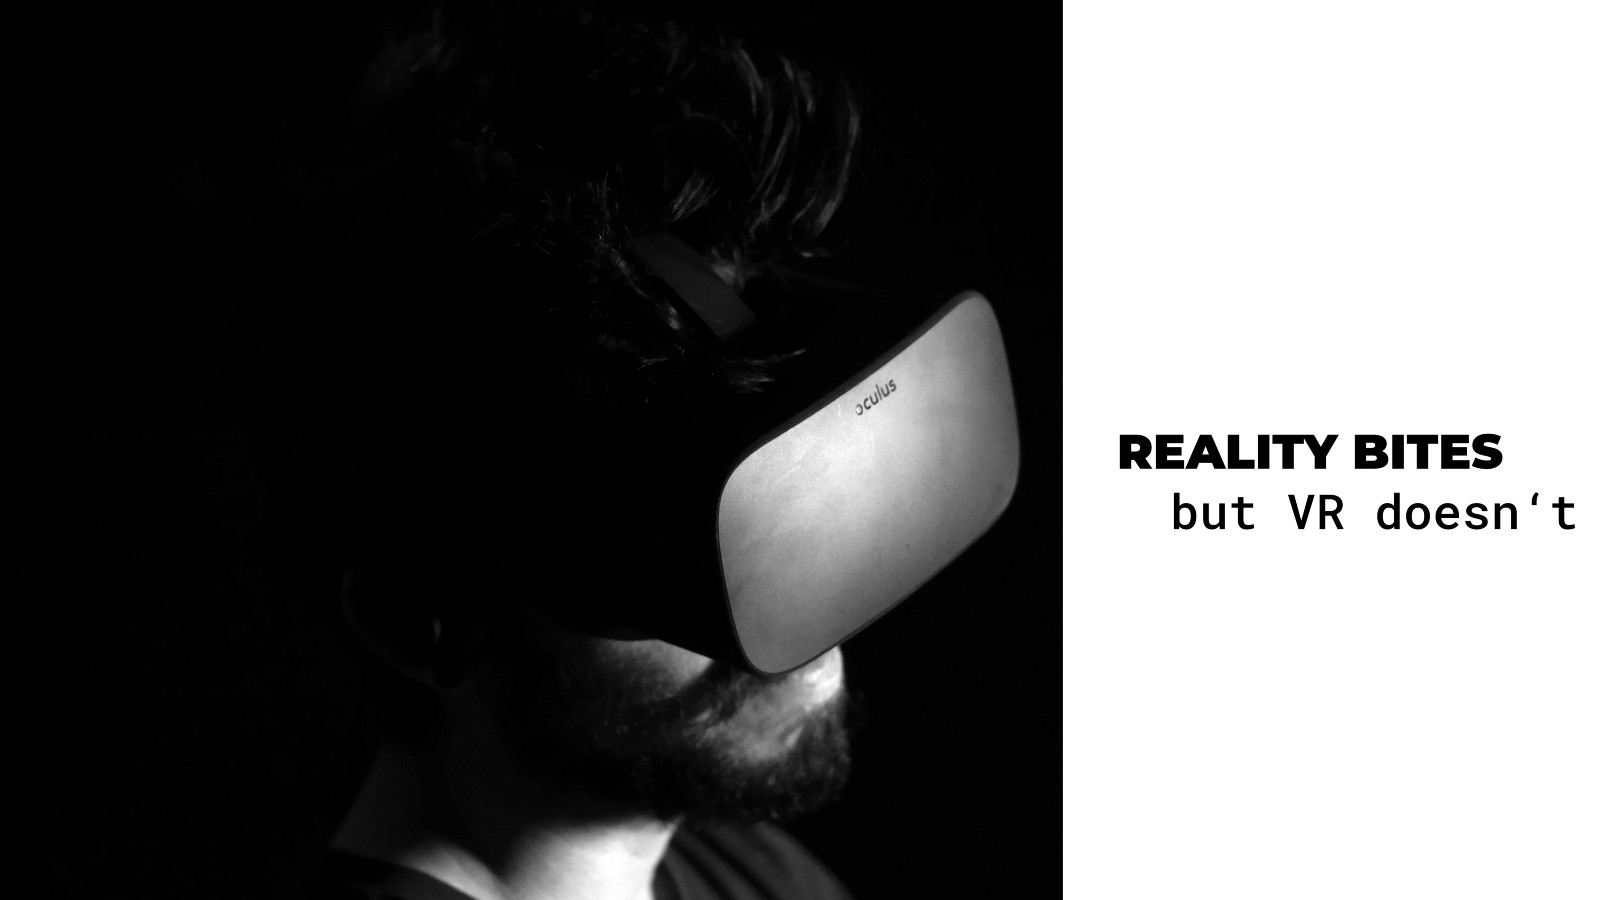 /reality-bites-but-vr-doesnt-be441a74ab15 feature image